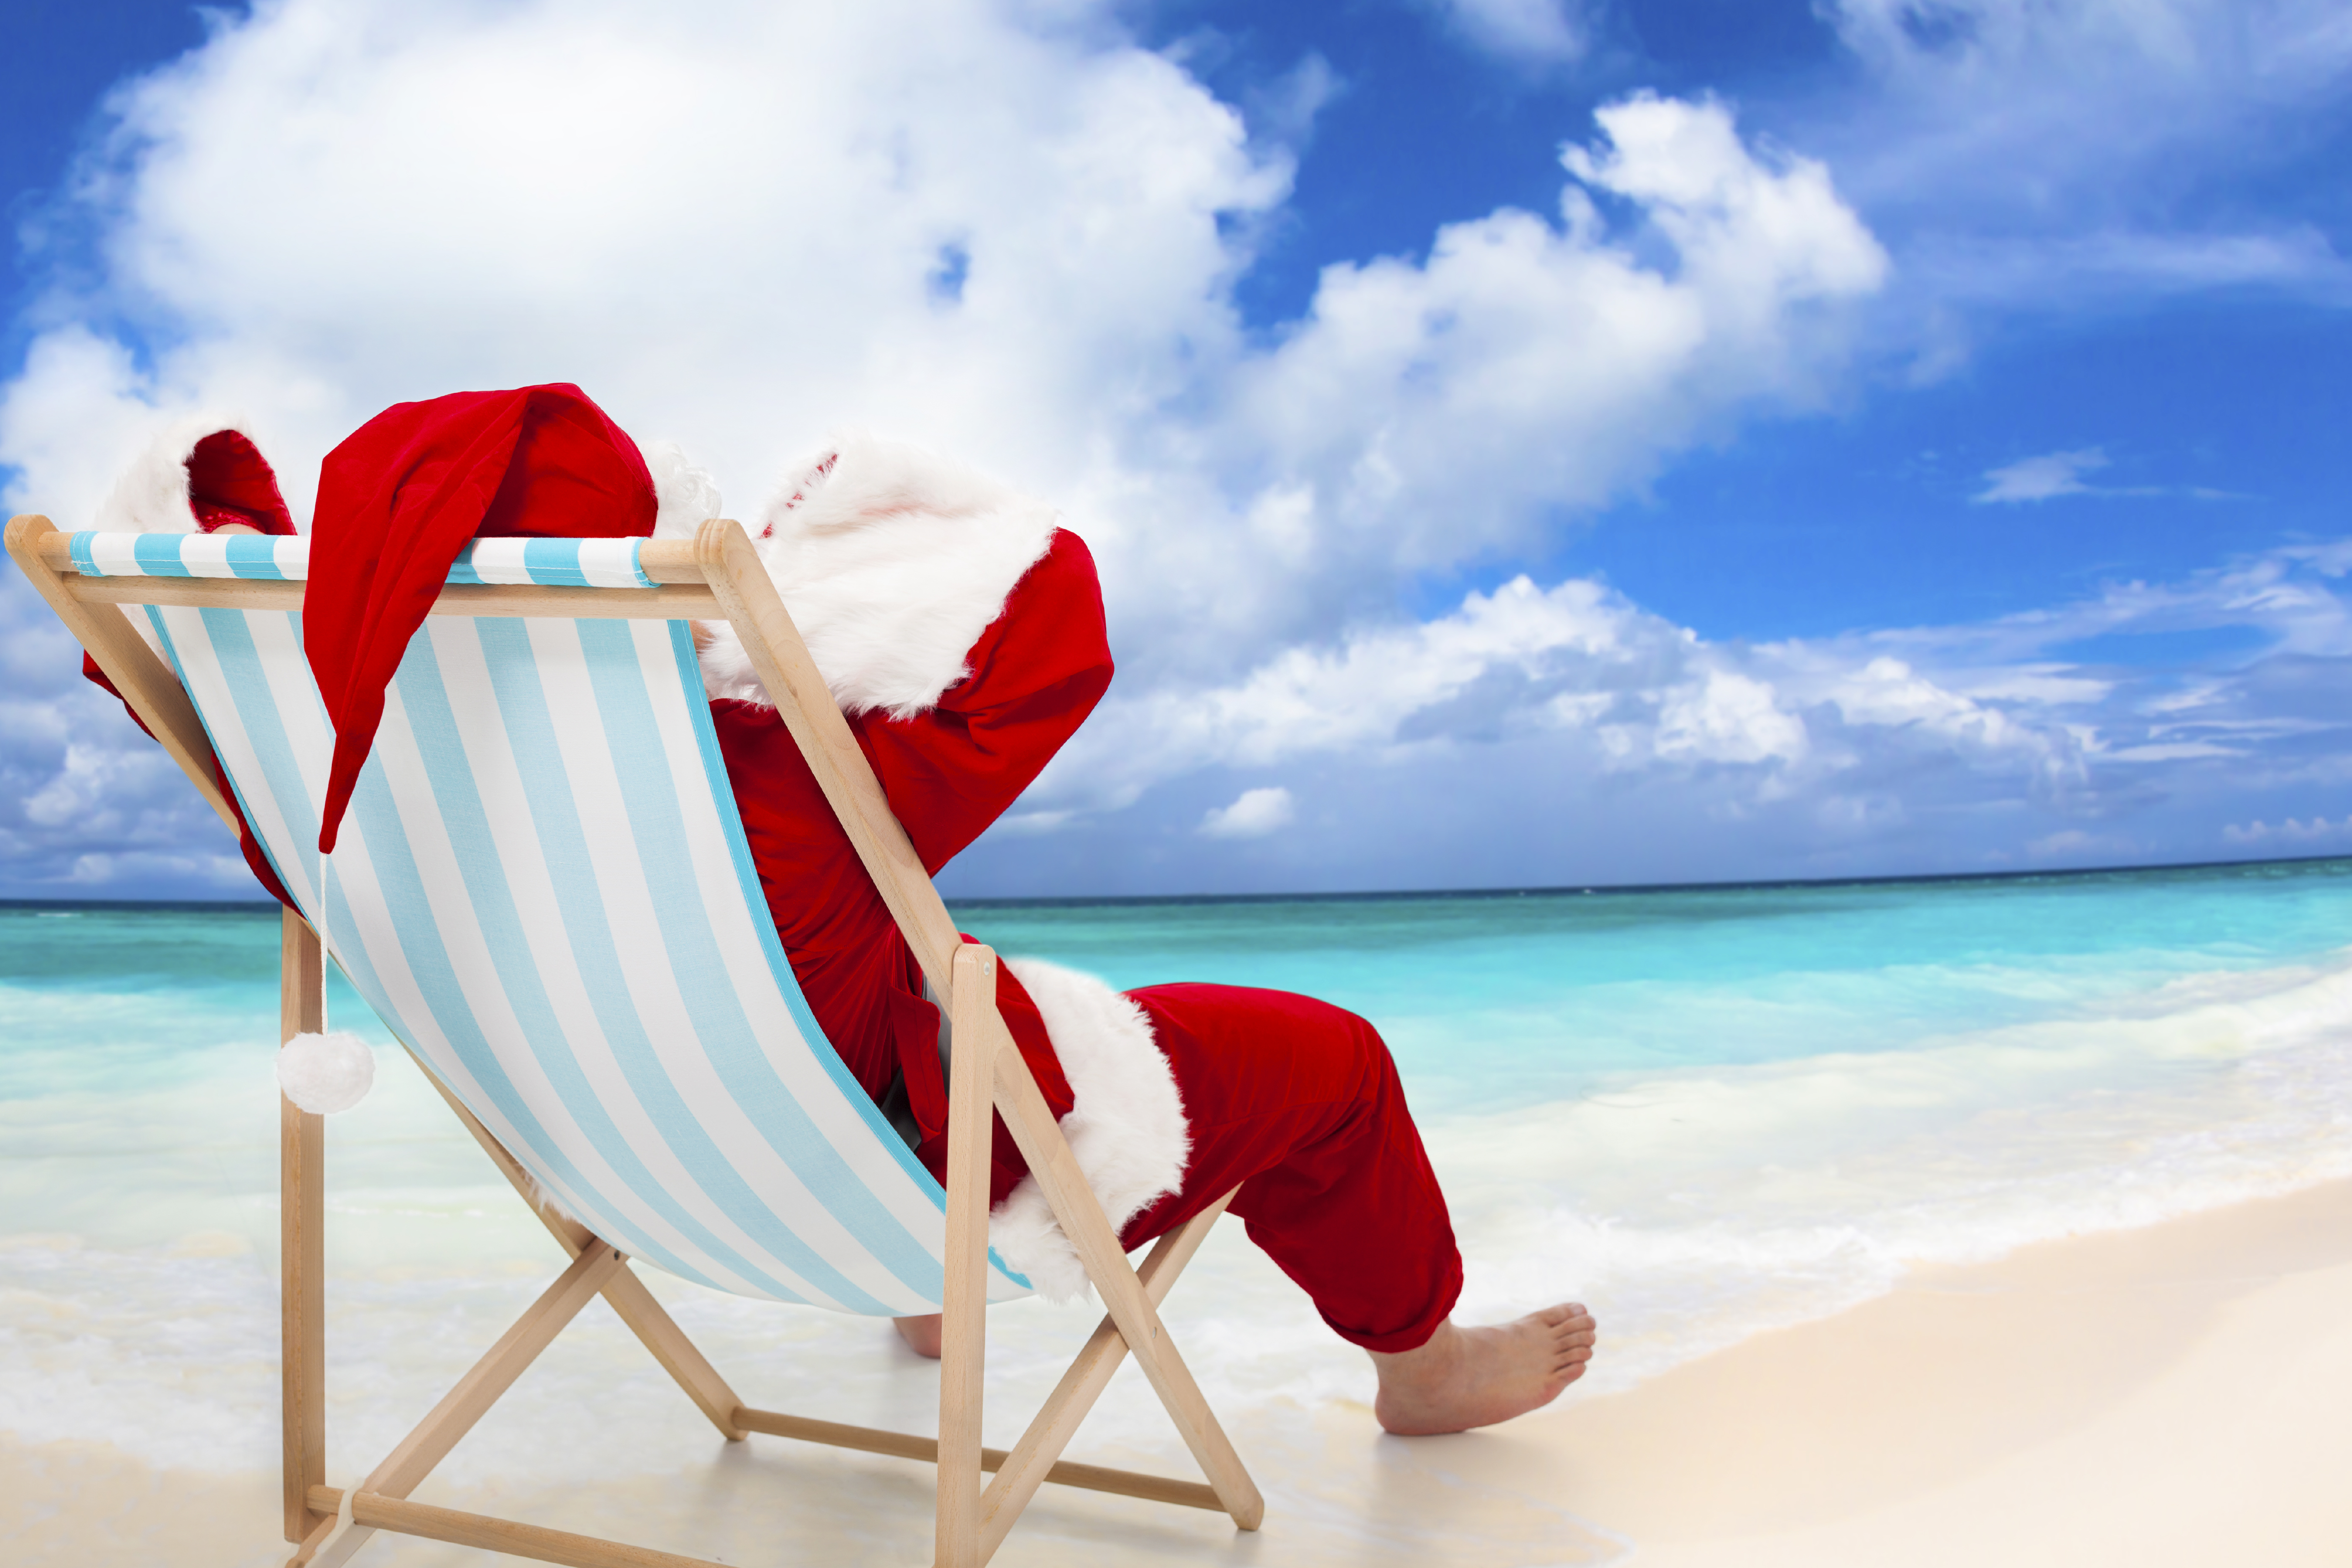 Christmas in July at Viaero Wireless